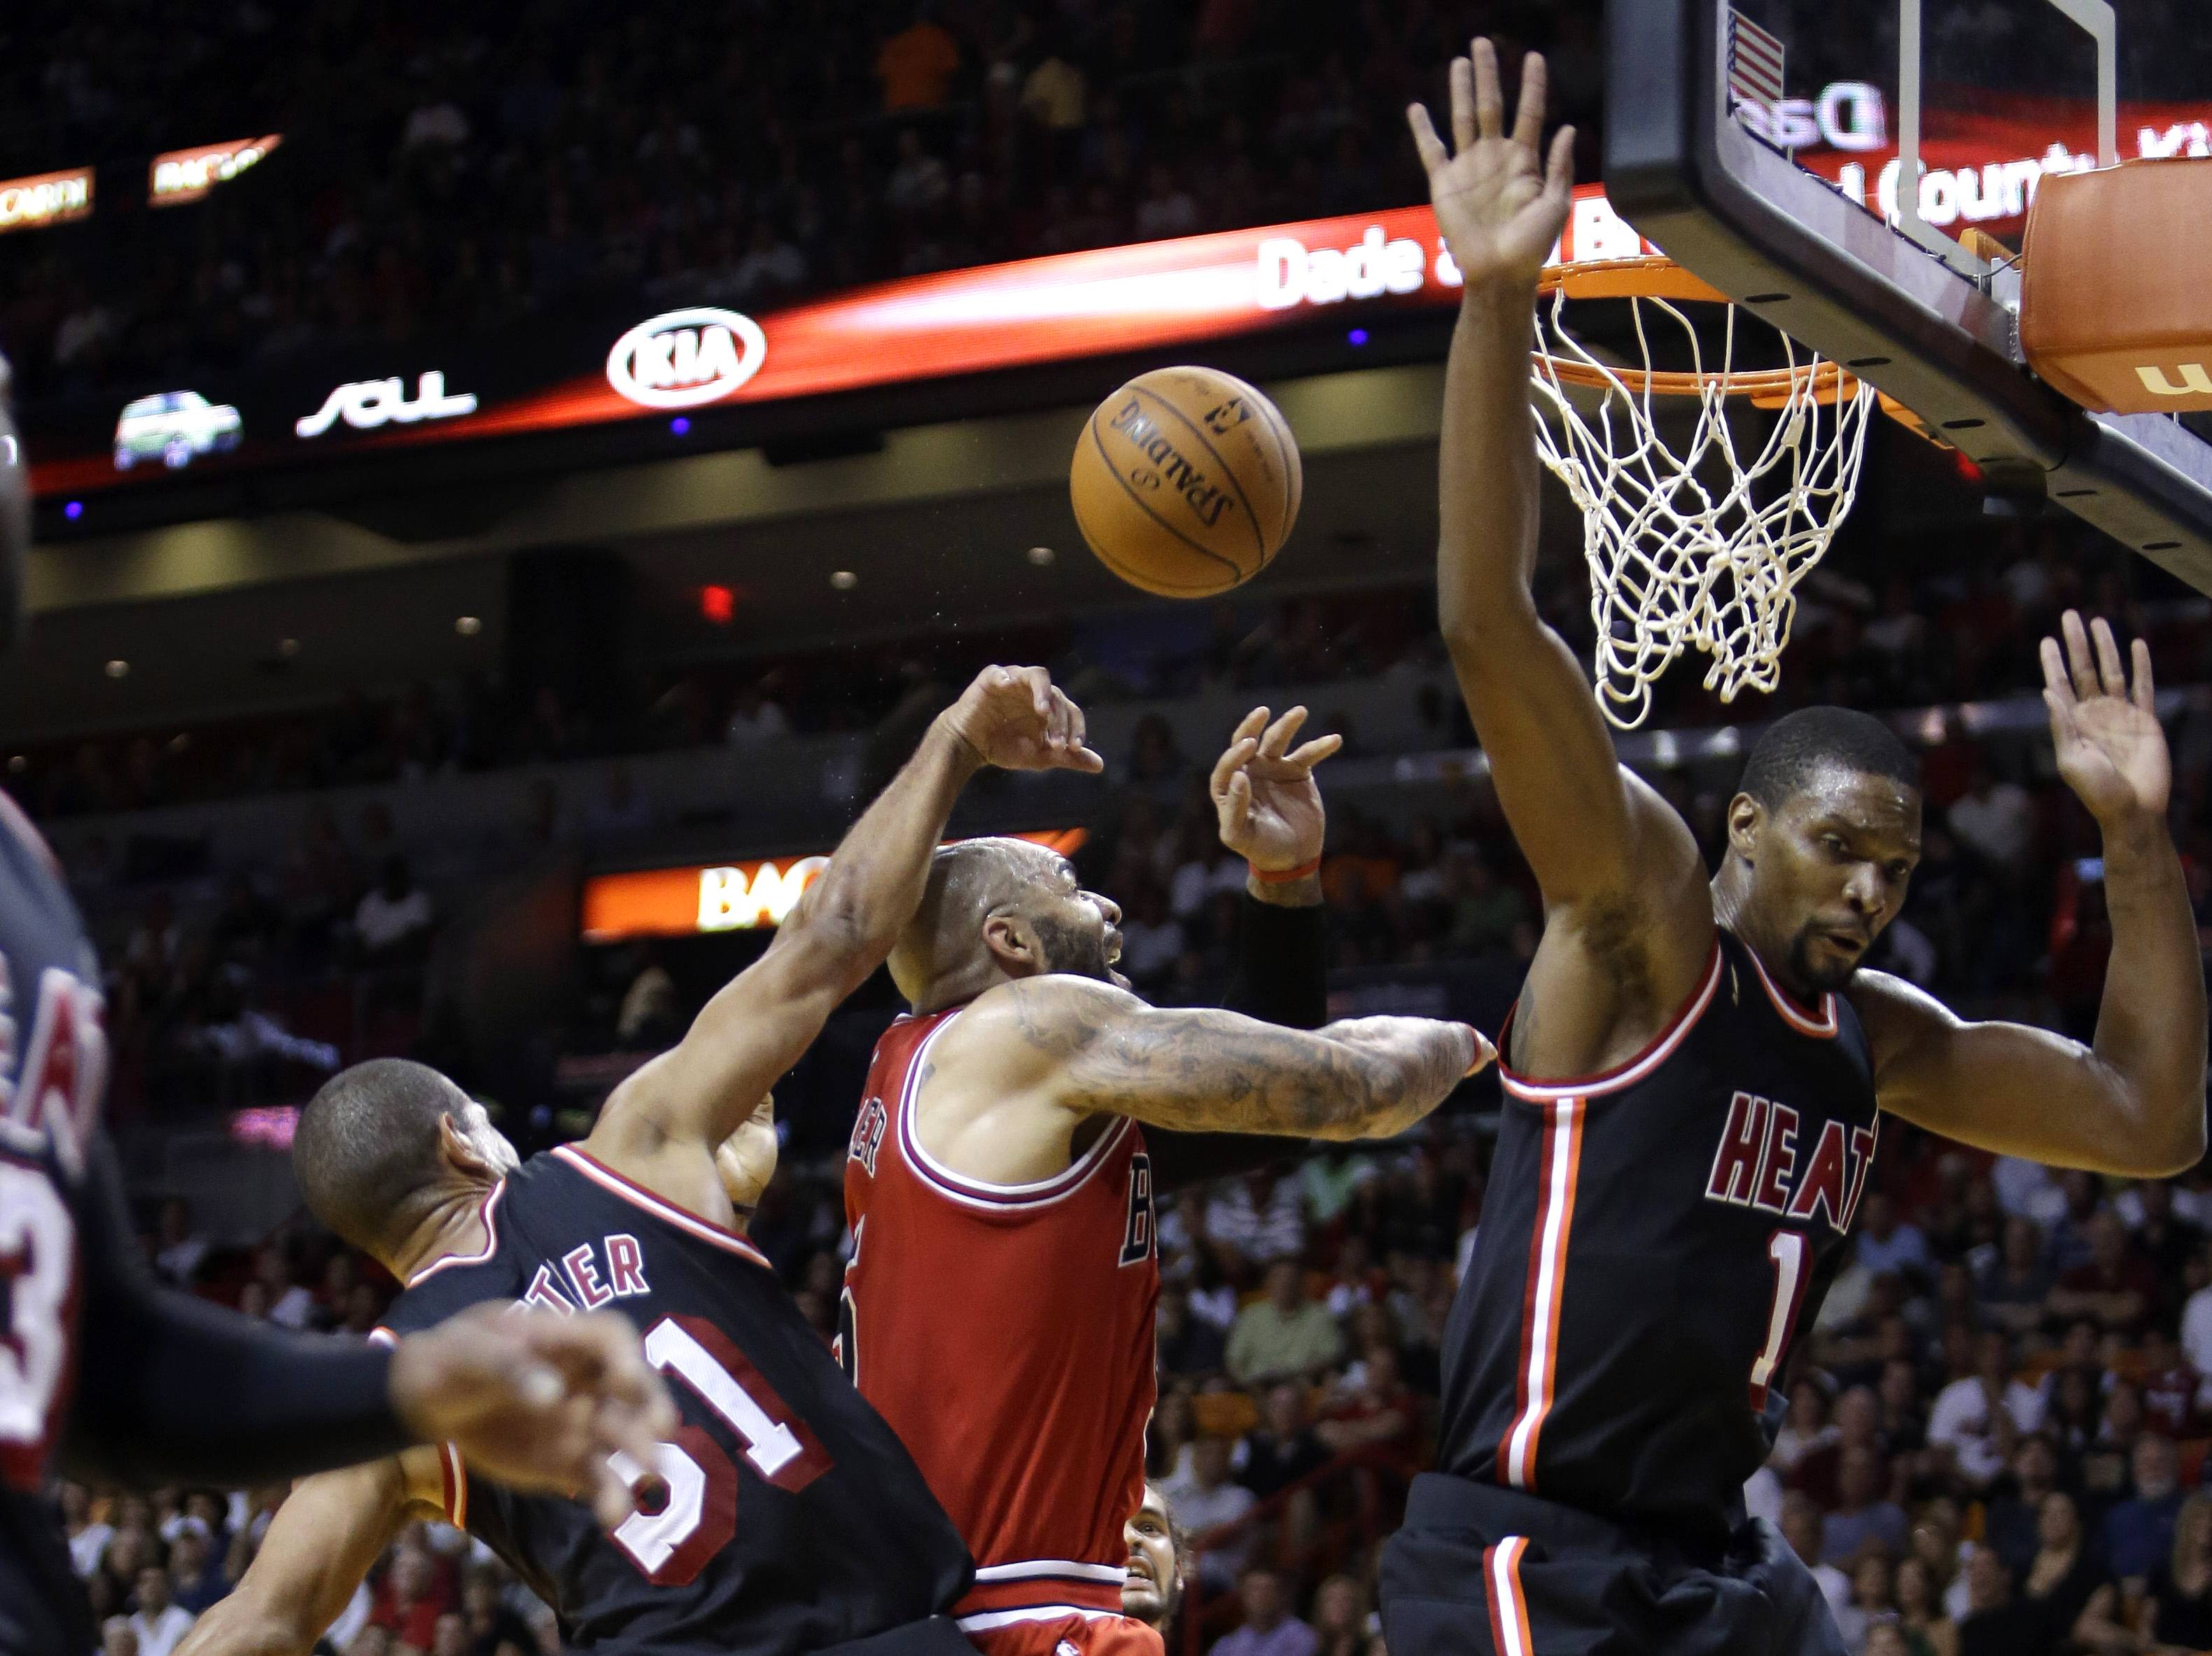 Chicago Bulls' Carlos Boozer, center, is fouled by Miami Heat's Shane Battier (31) during the second half of an NBA basketball game, Sunday, Feb. 23, 2014, in Miami. The Heat defeated the Bulls 93-79. At right is Heat's Chris Bosh (1).